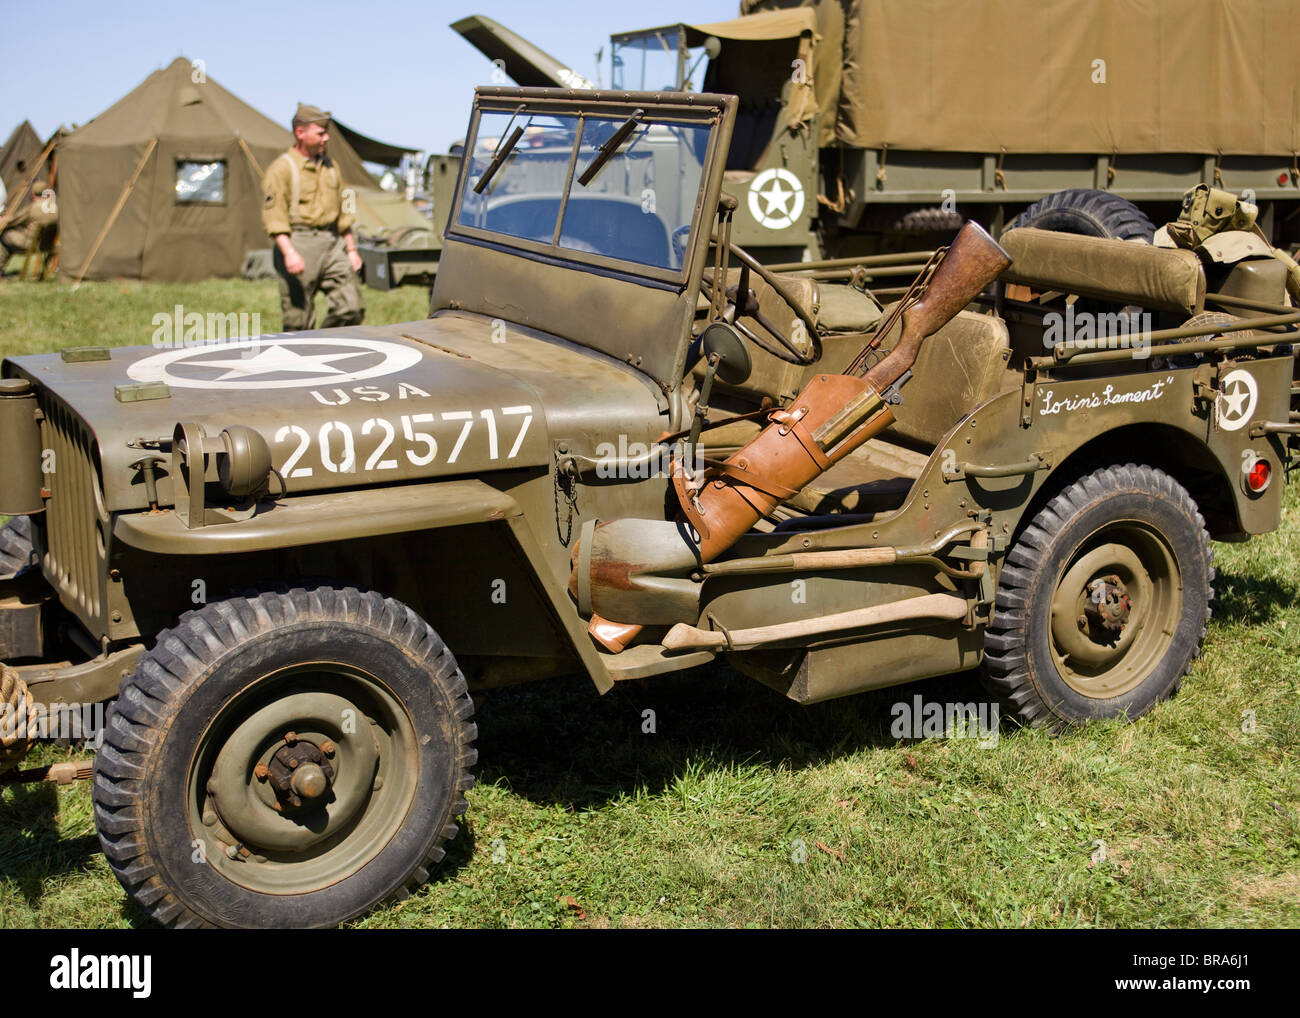 hight resolution of wwii era us army willys jeep stock image